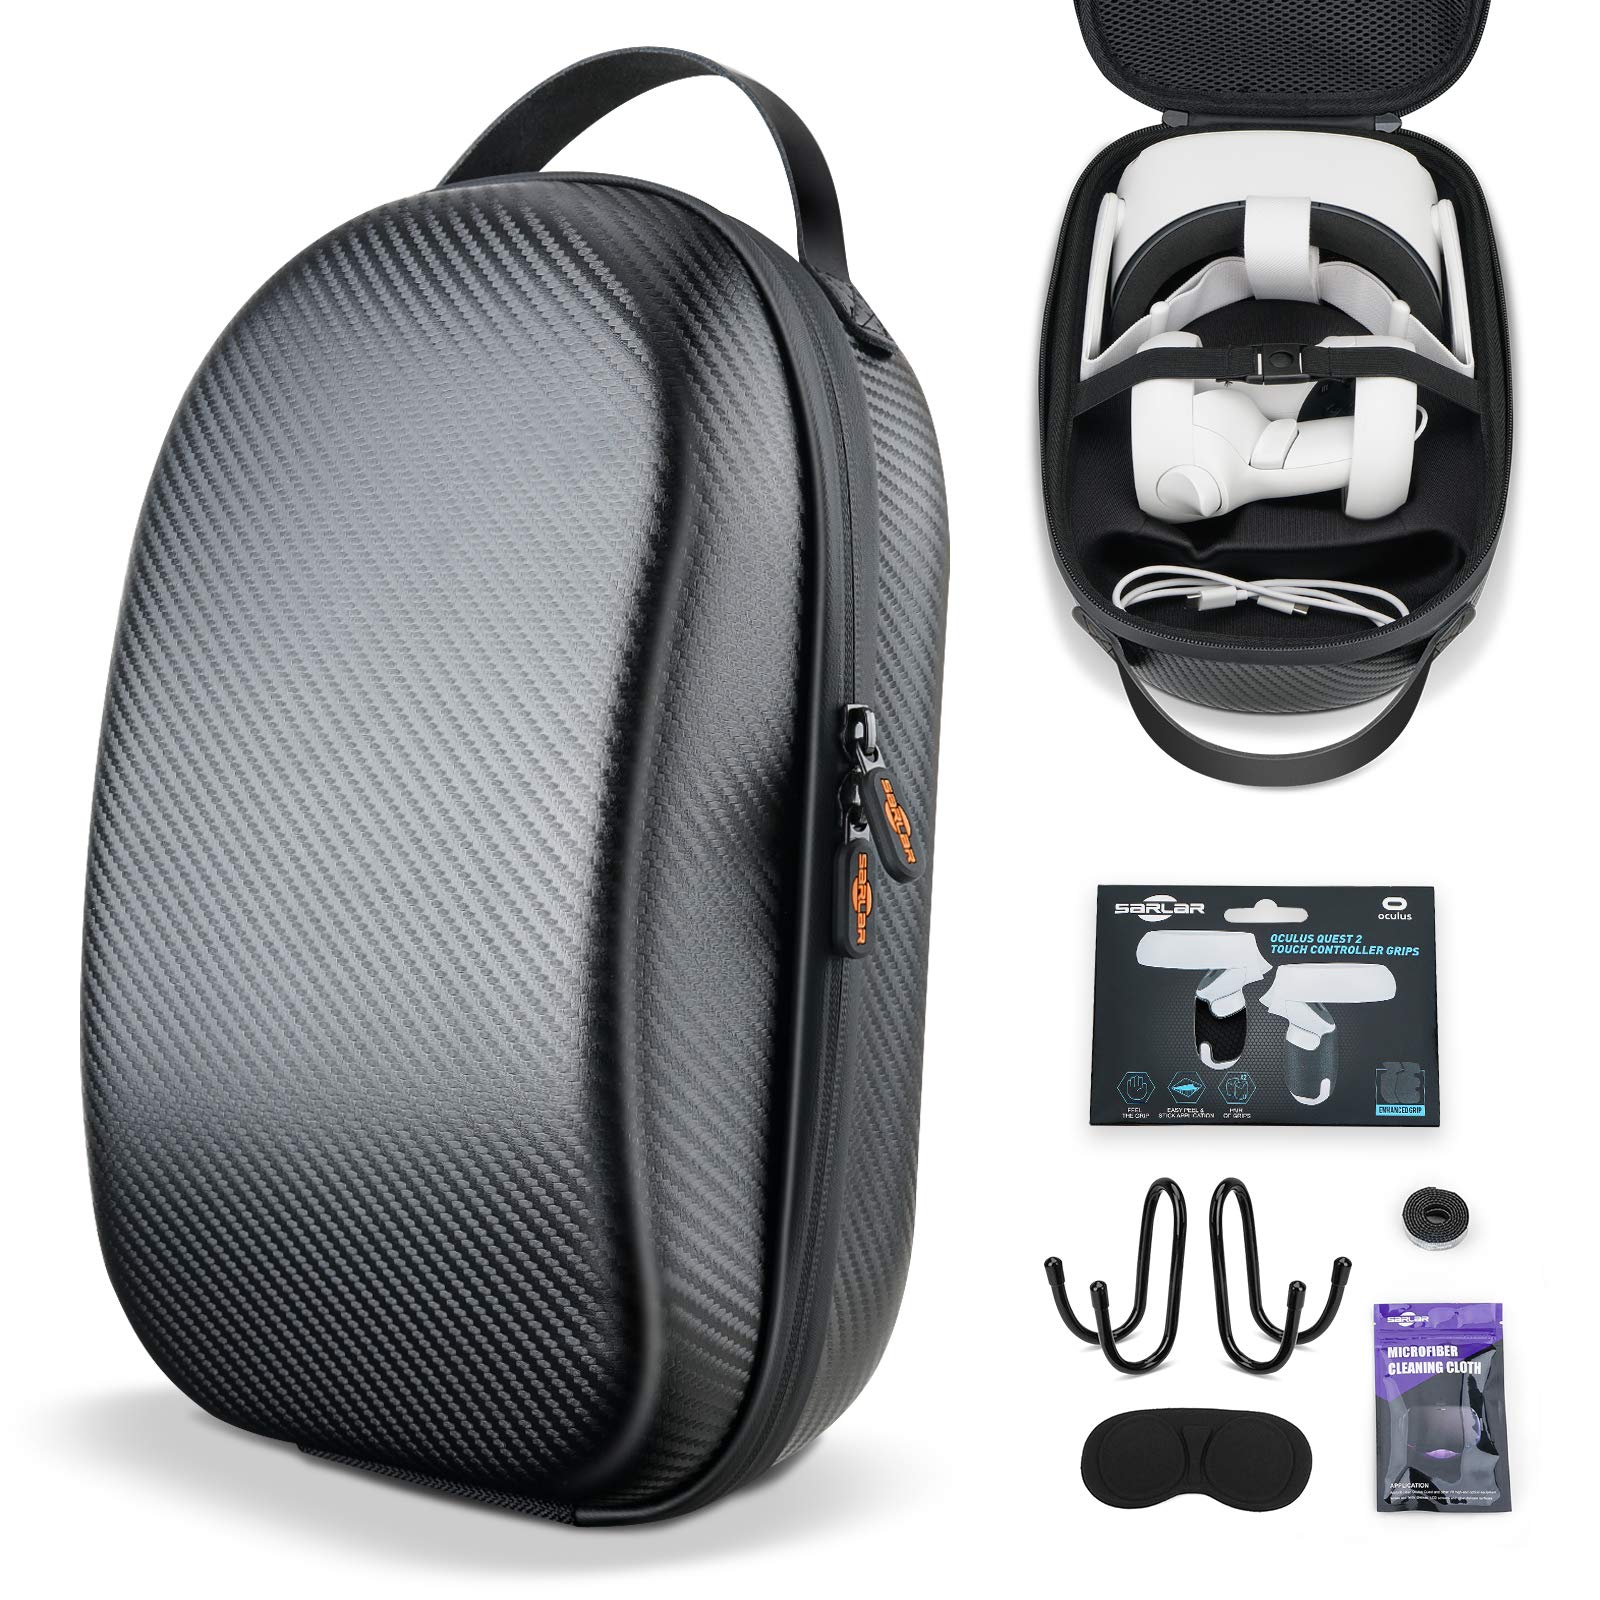 SARLAR Hard Carrying Case for Oculus Quest 2/ Elite Strap Edition/Quest Lightweight and Portable Protection, Custom Carbon Fiber Travel Case Storage VR Gaming Headset and Touch Controller Accessories